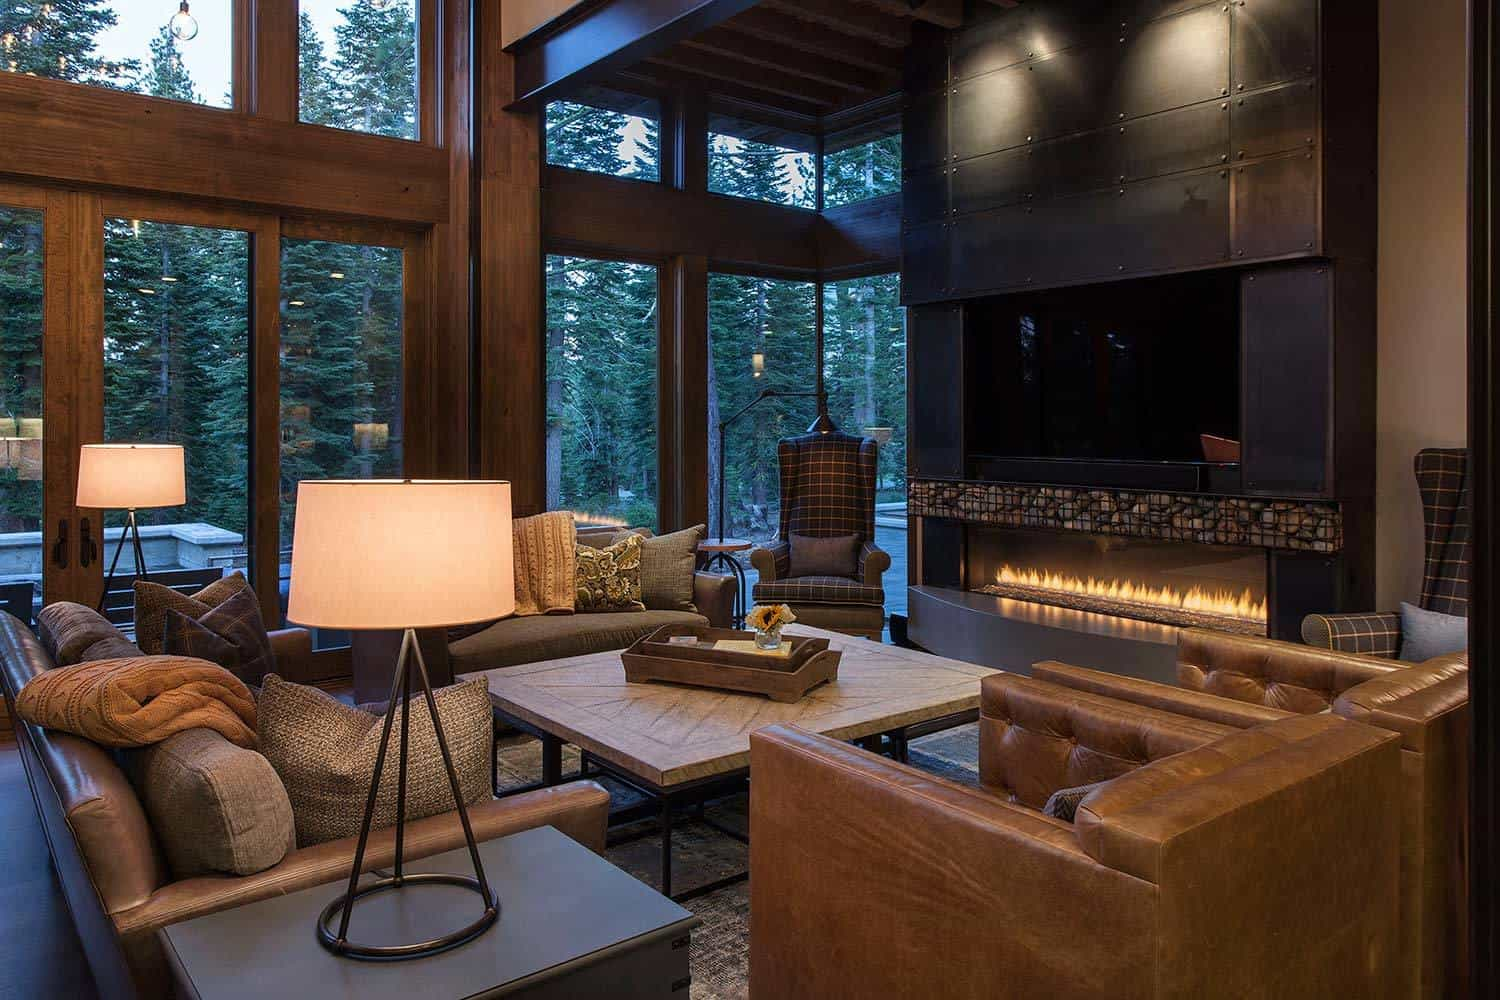 Lake tahoe getaway features contemporary barn aesthetic for Home inner decoration